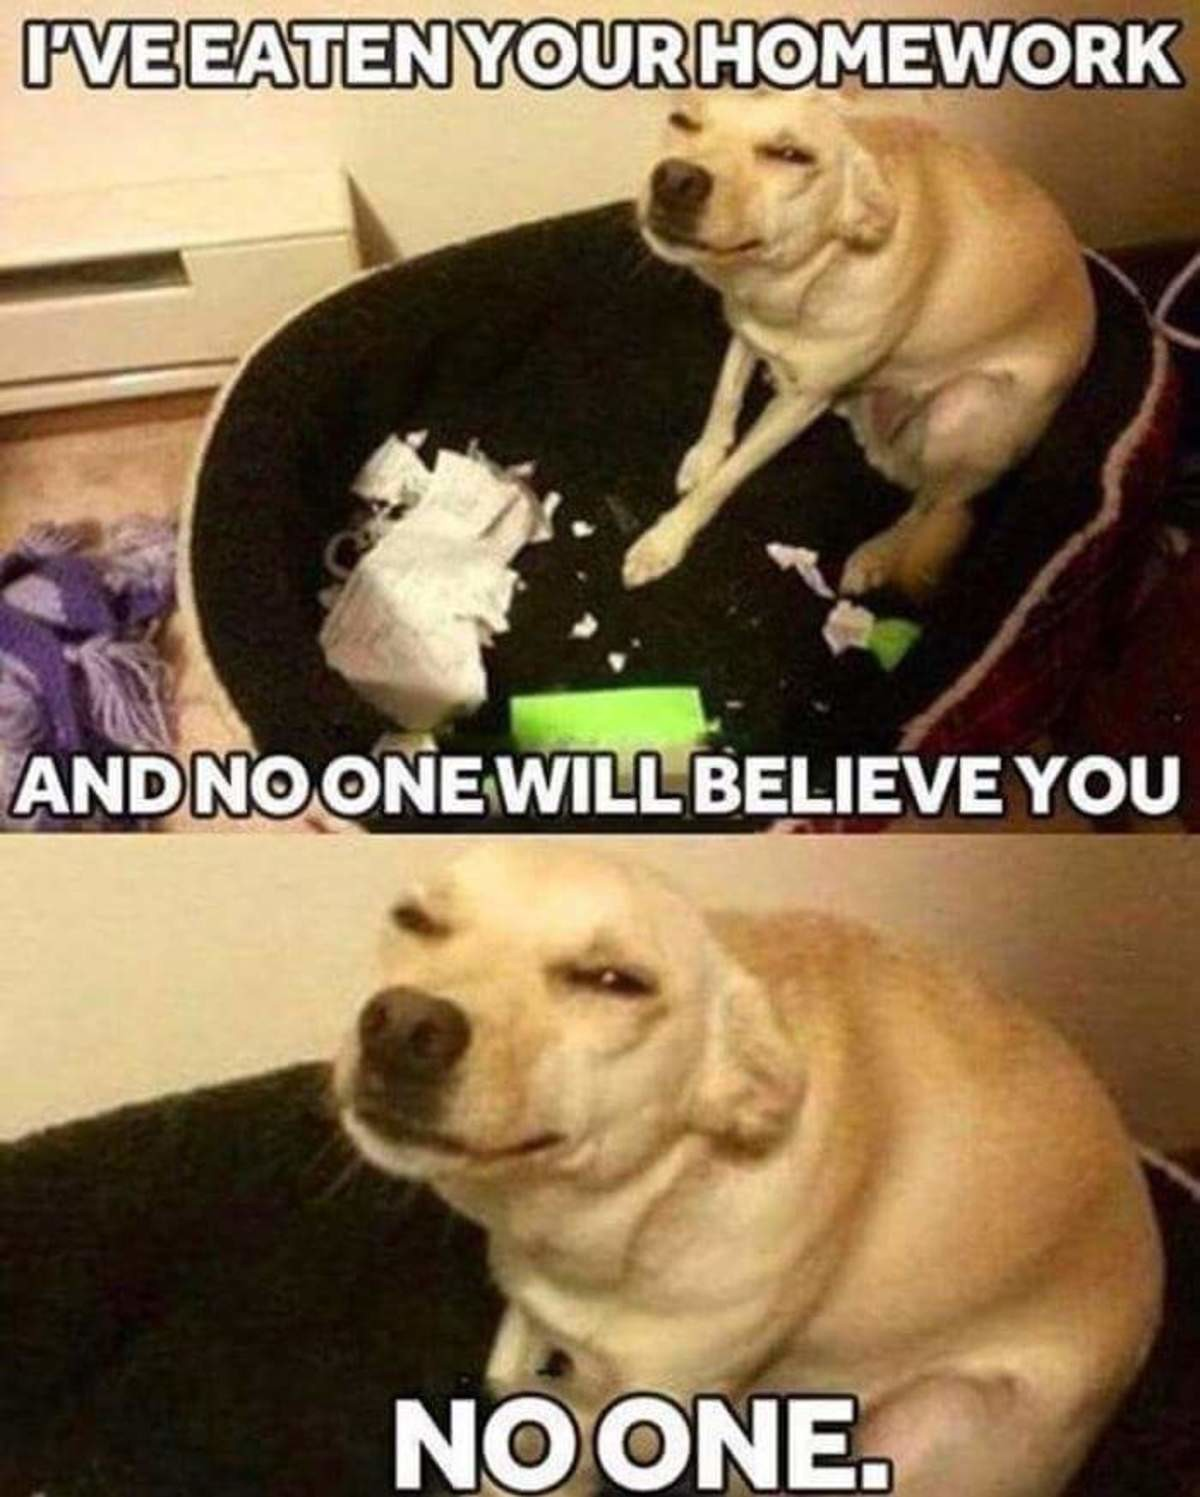 bad, bad dog!. . iil. ', lellel, HMWRK litl _ i, NOONE WILL , ii, 'Youll. You can lick your balls goodbye then, buddy